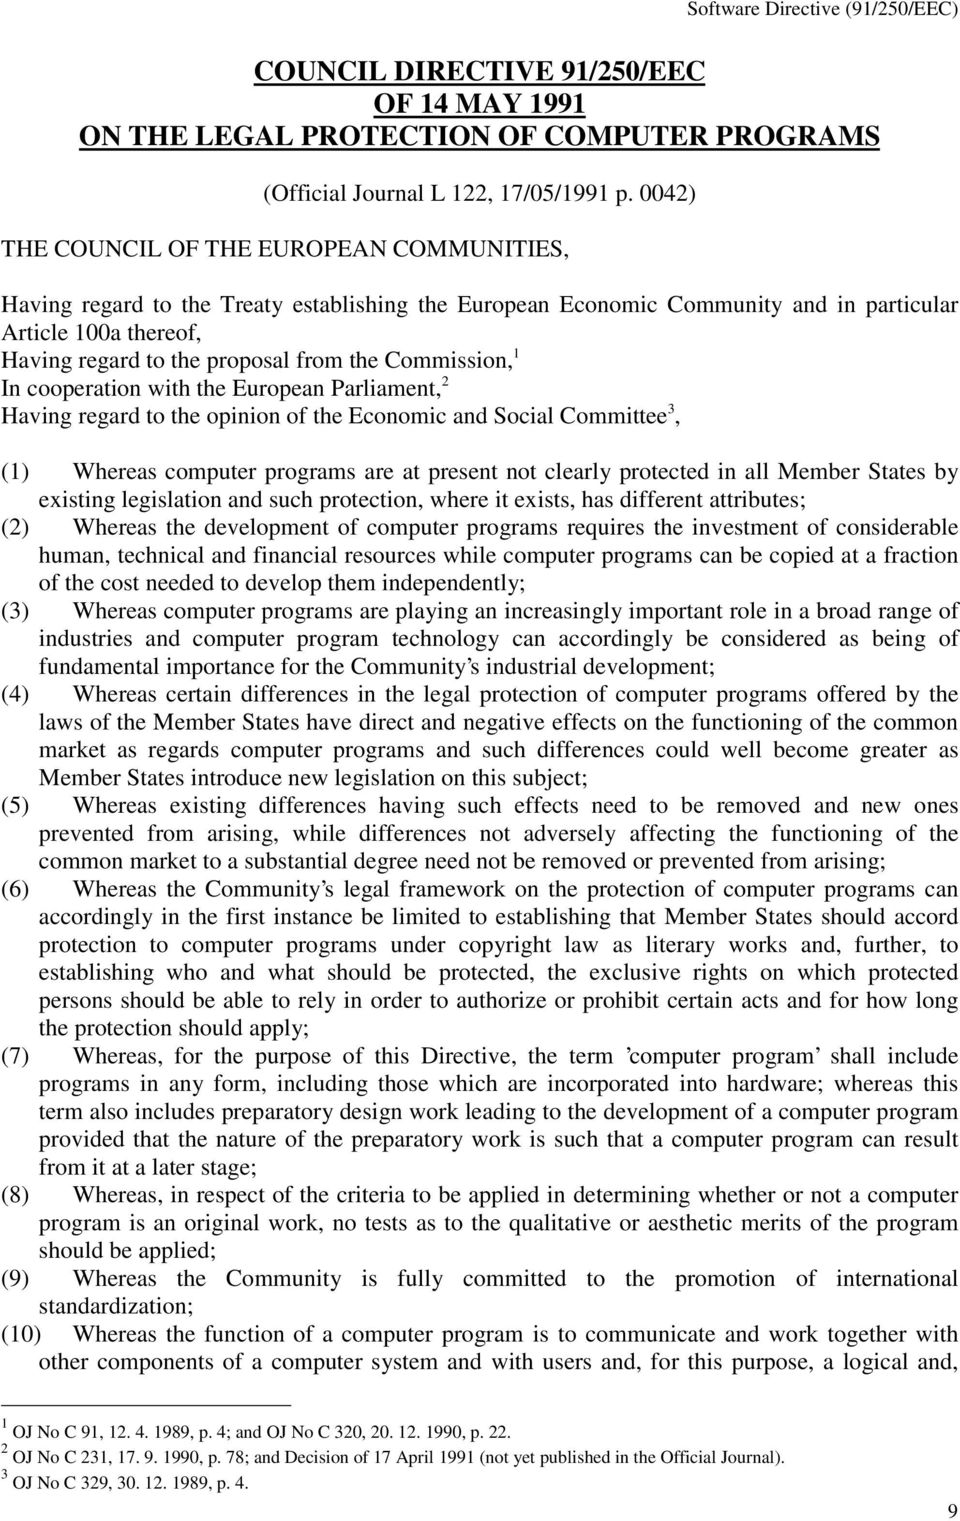 Commission, 1 In cooperation with the European Parliament, 2 Having regard to the opinion of the Economic and Social Committee 3, (1) Whereas computer programs are at present not clearly protected in